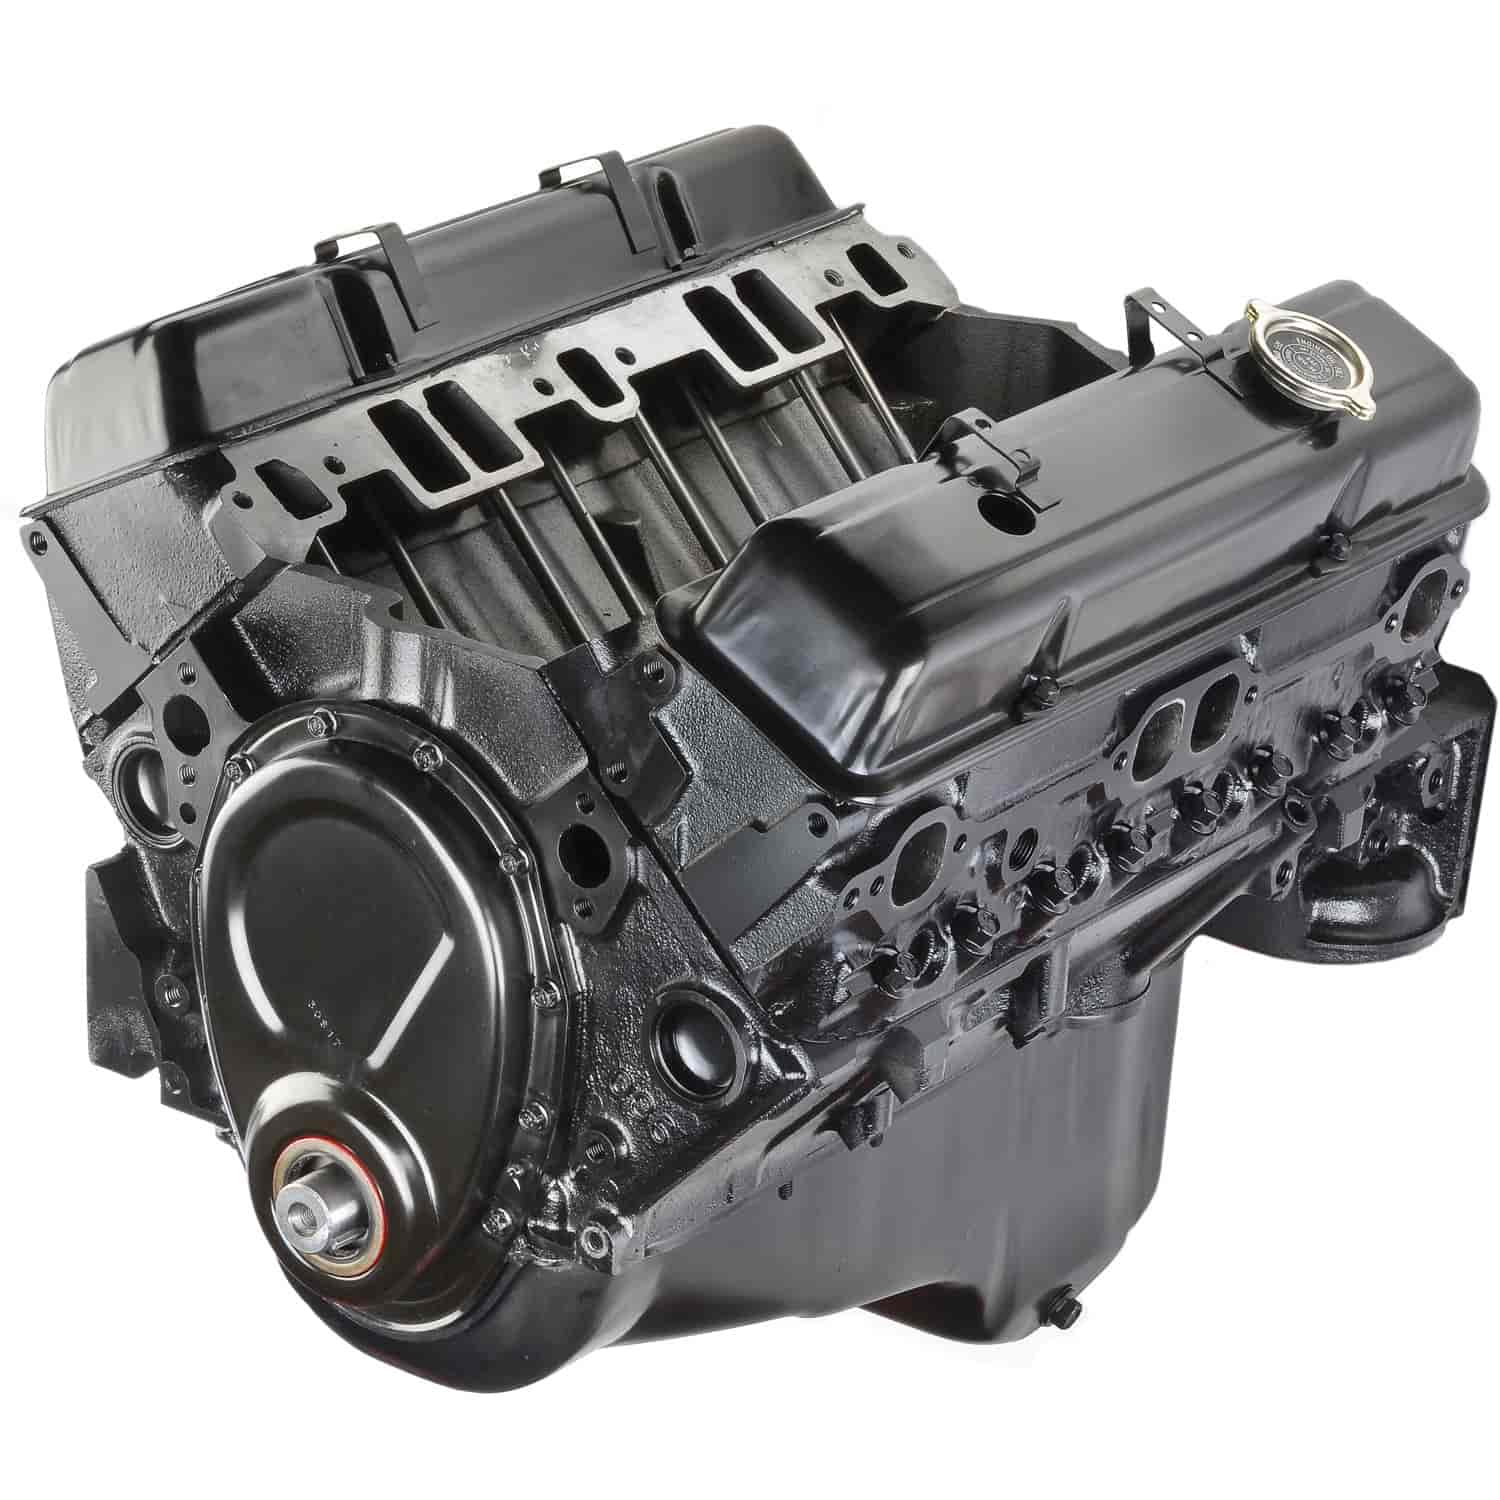 Chevrolet Performance 10067353 - GM Goodwrench 350ci/260HP Engine & Packages